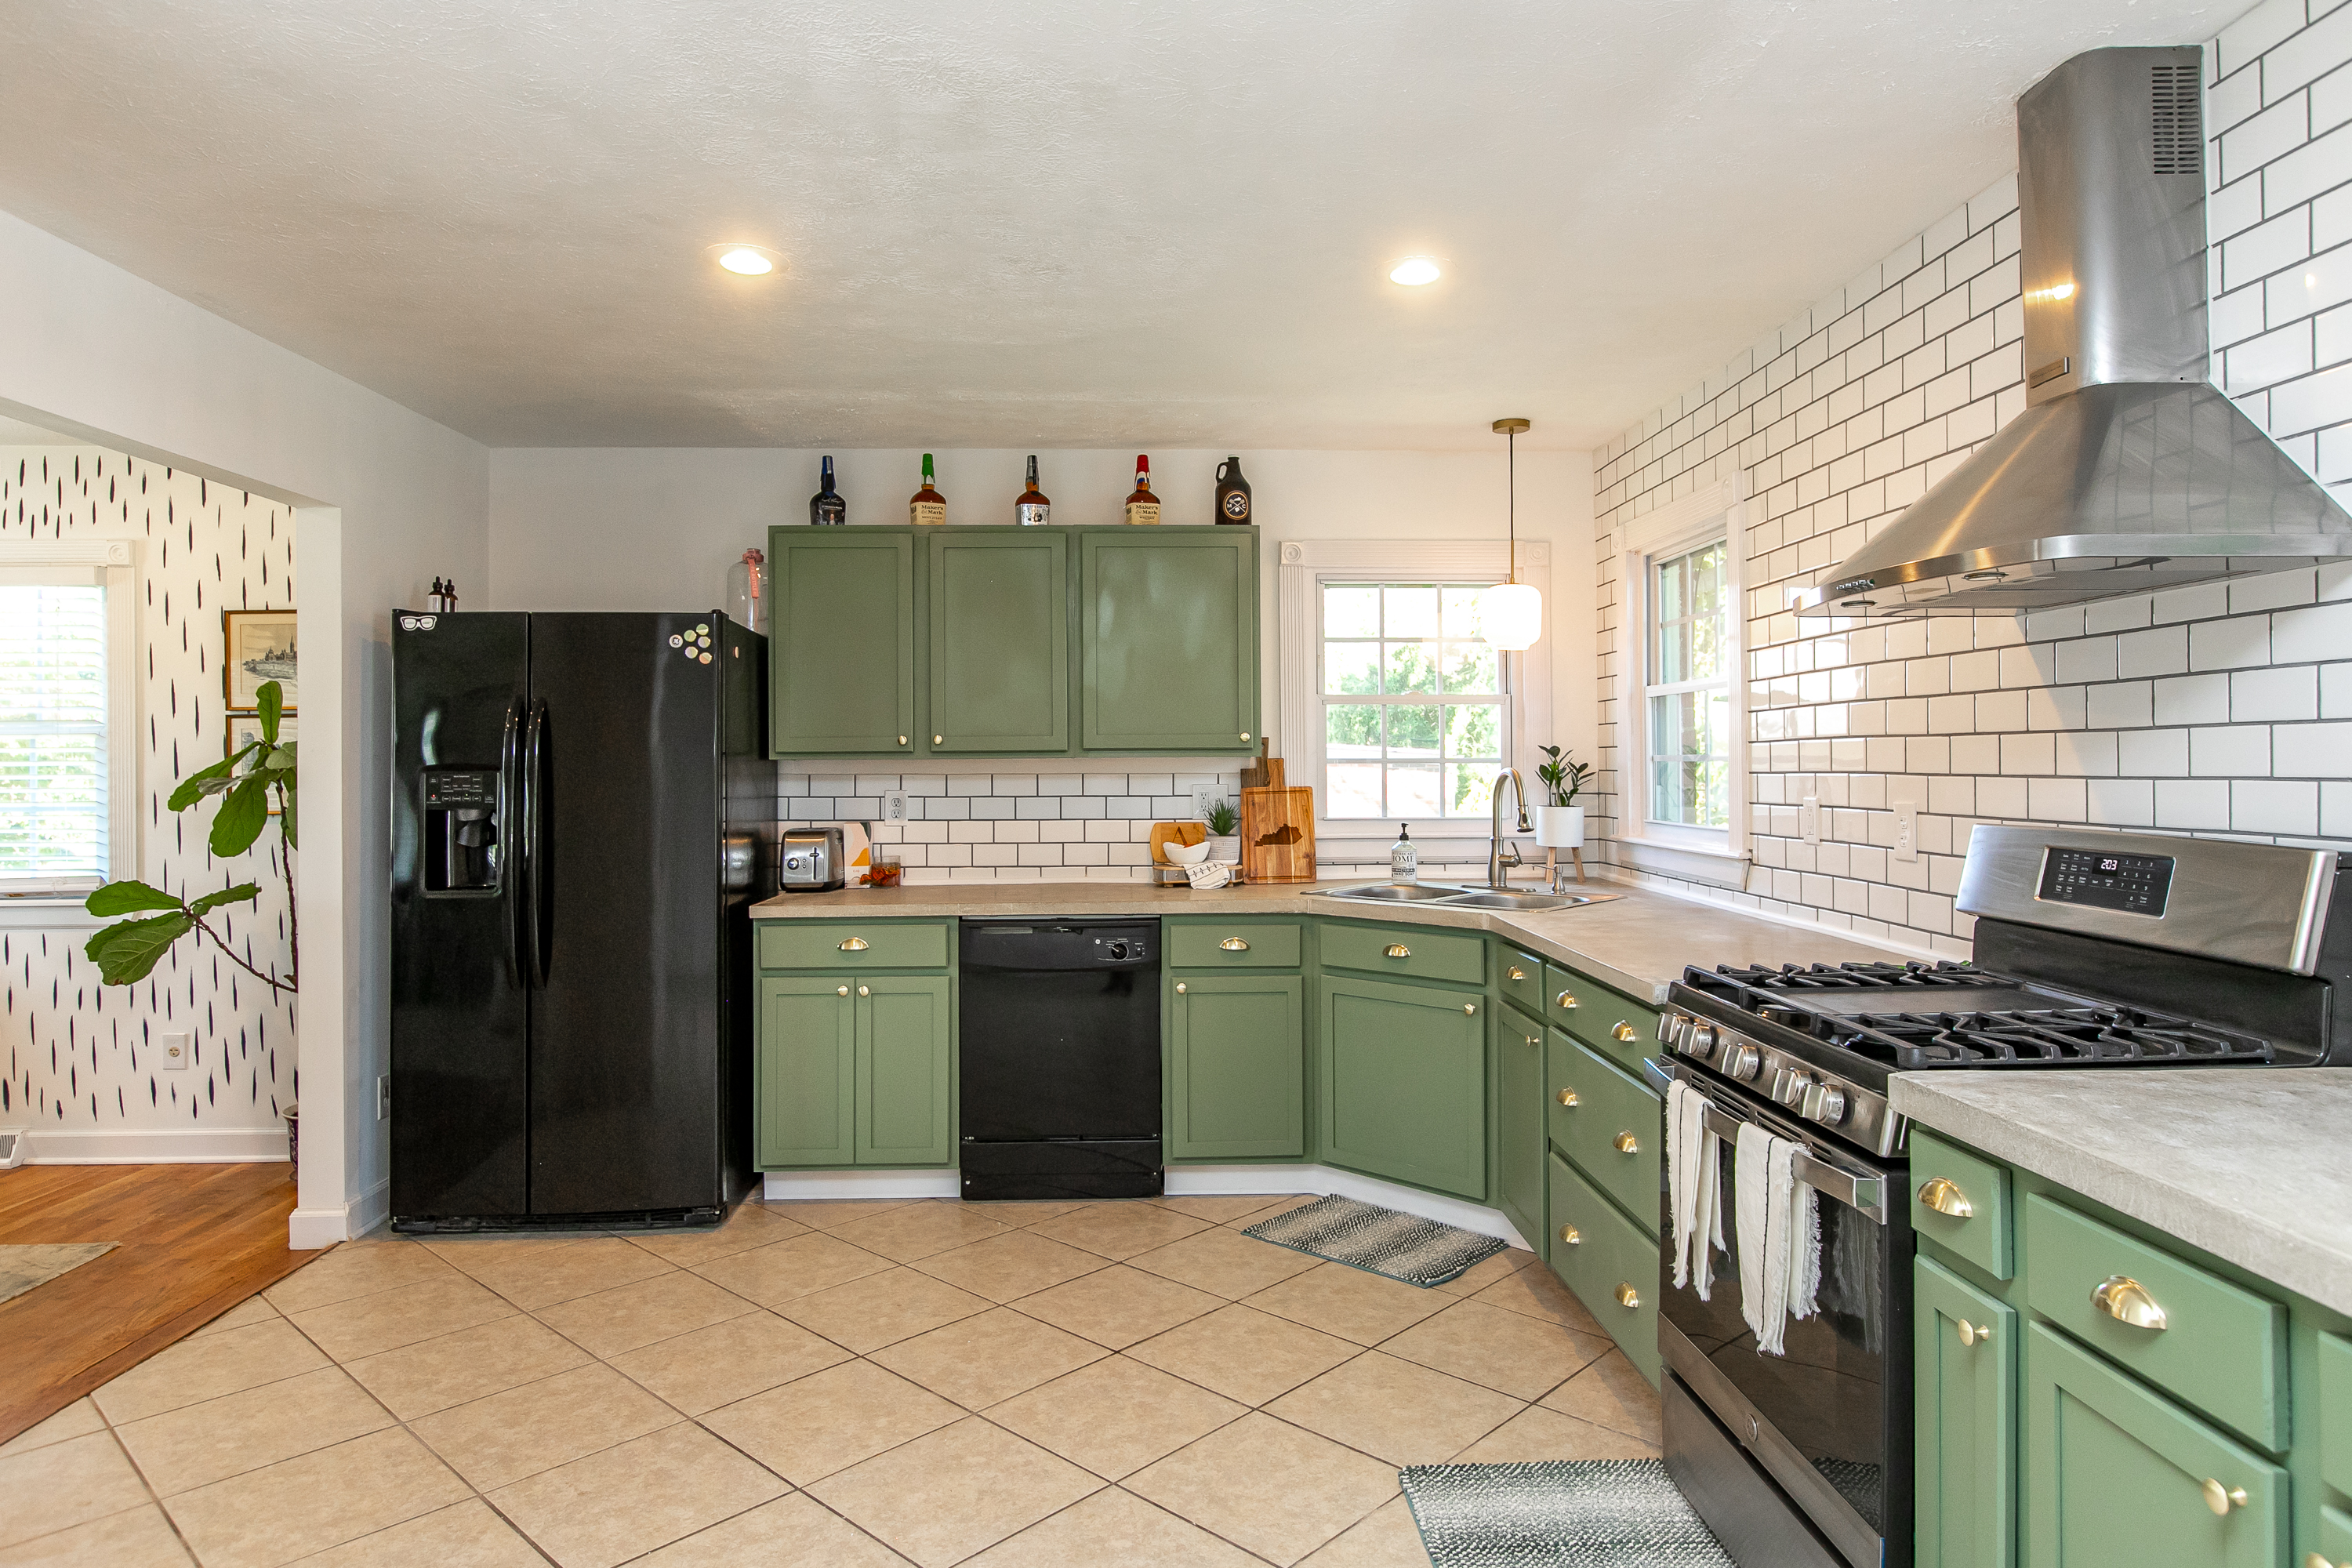 kitchen at 909 lily drive in lexington's gardenside area, ranch on real estate market